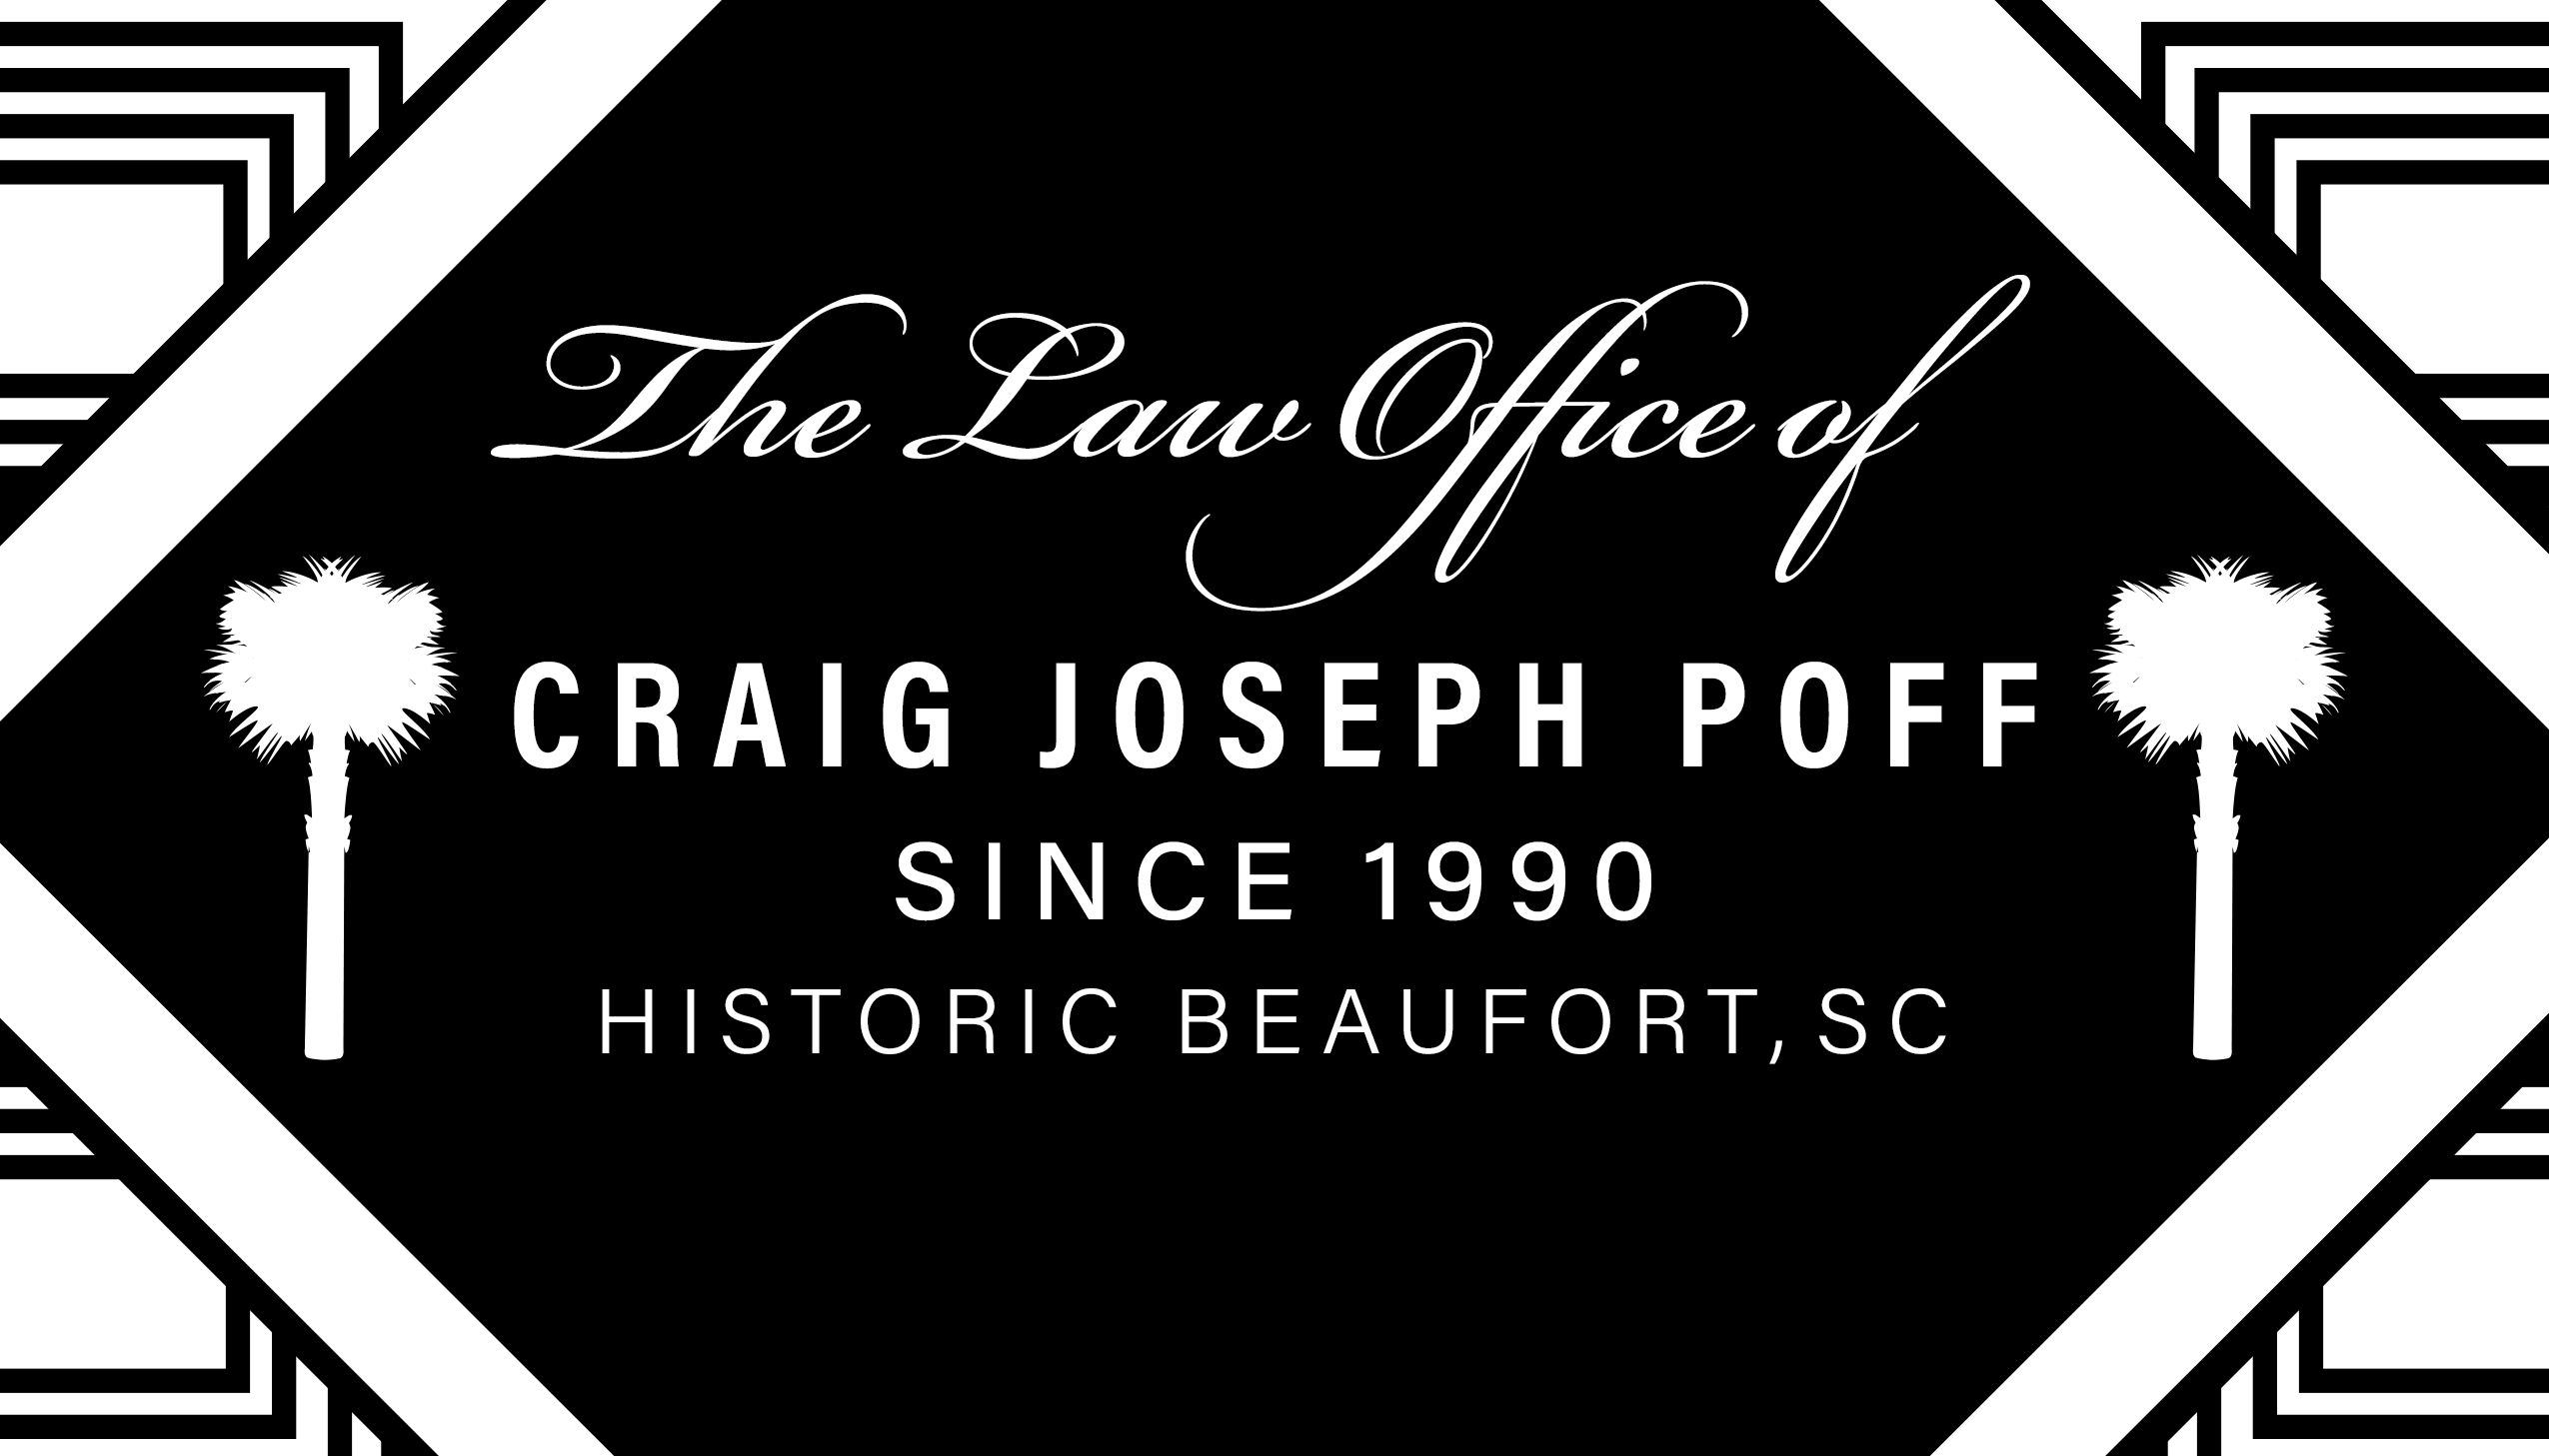 Poff Law Office Since 1990 in Historic Beaufort SC